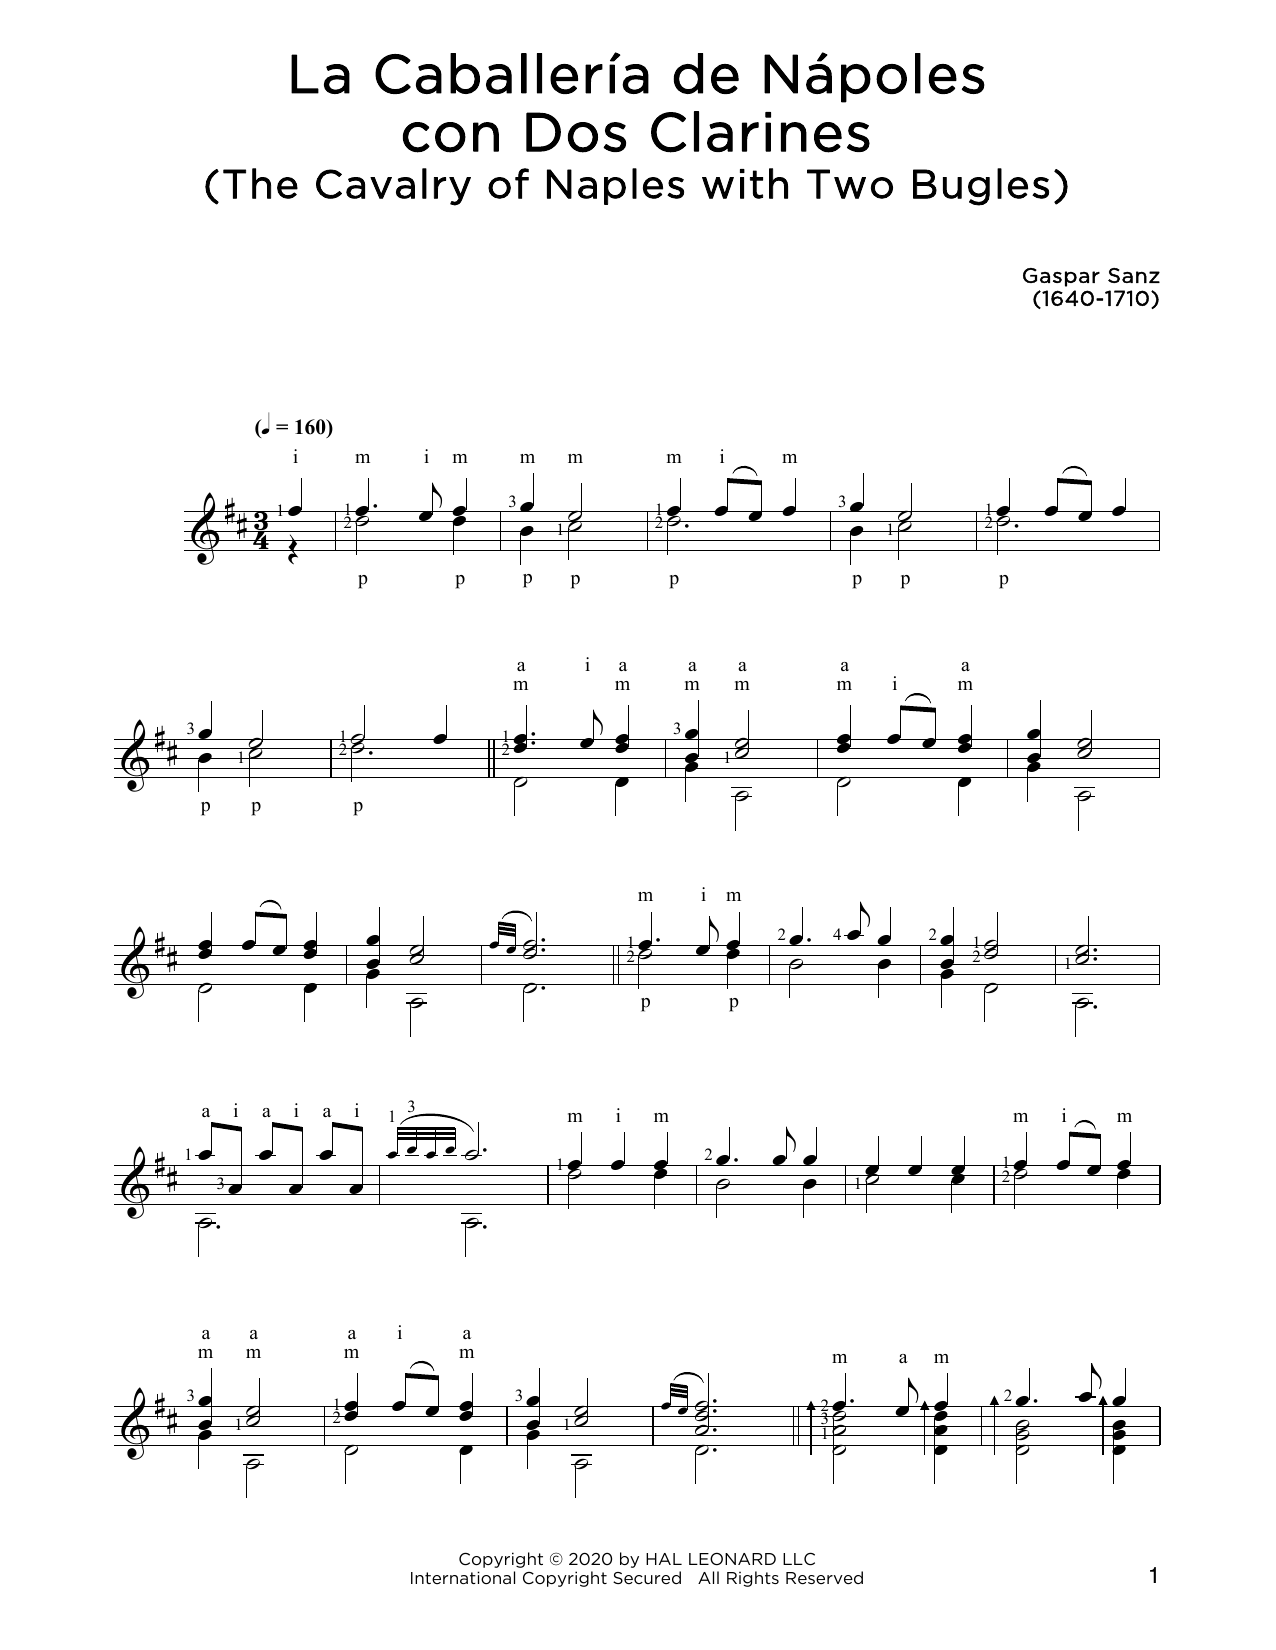 Gaspar Sanz La Caballeria de Napoles con Don Clarines sheet music notes and chords. Download Printable PDF.